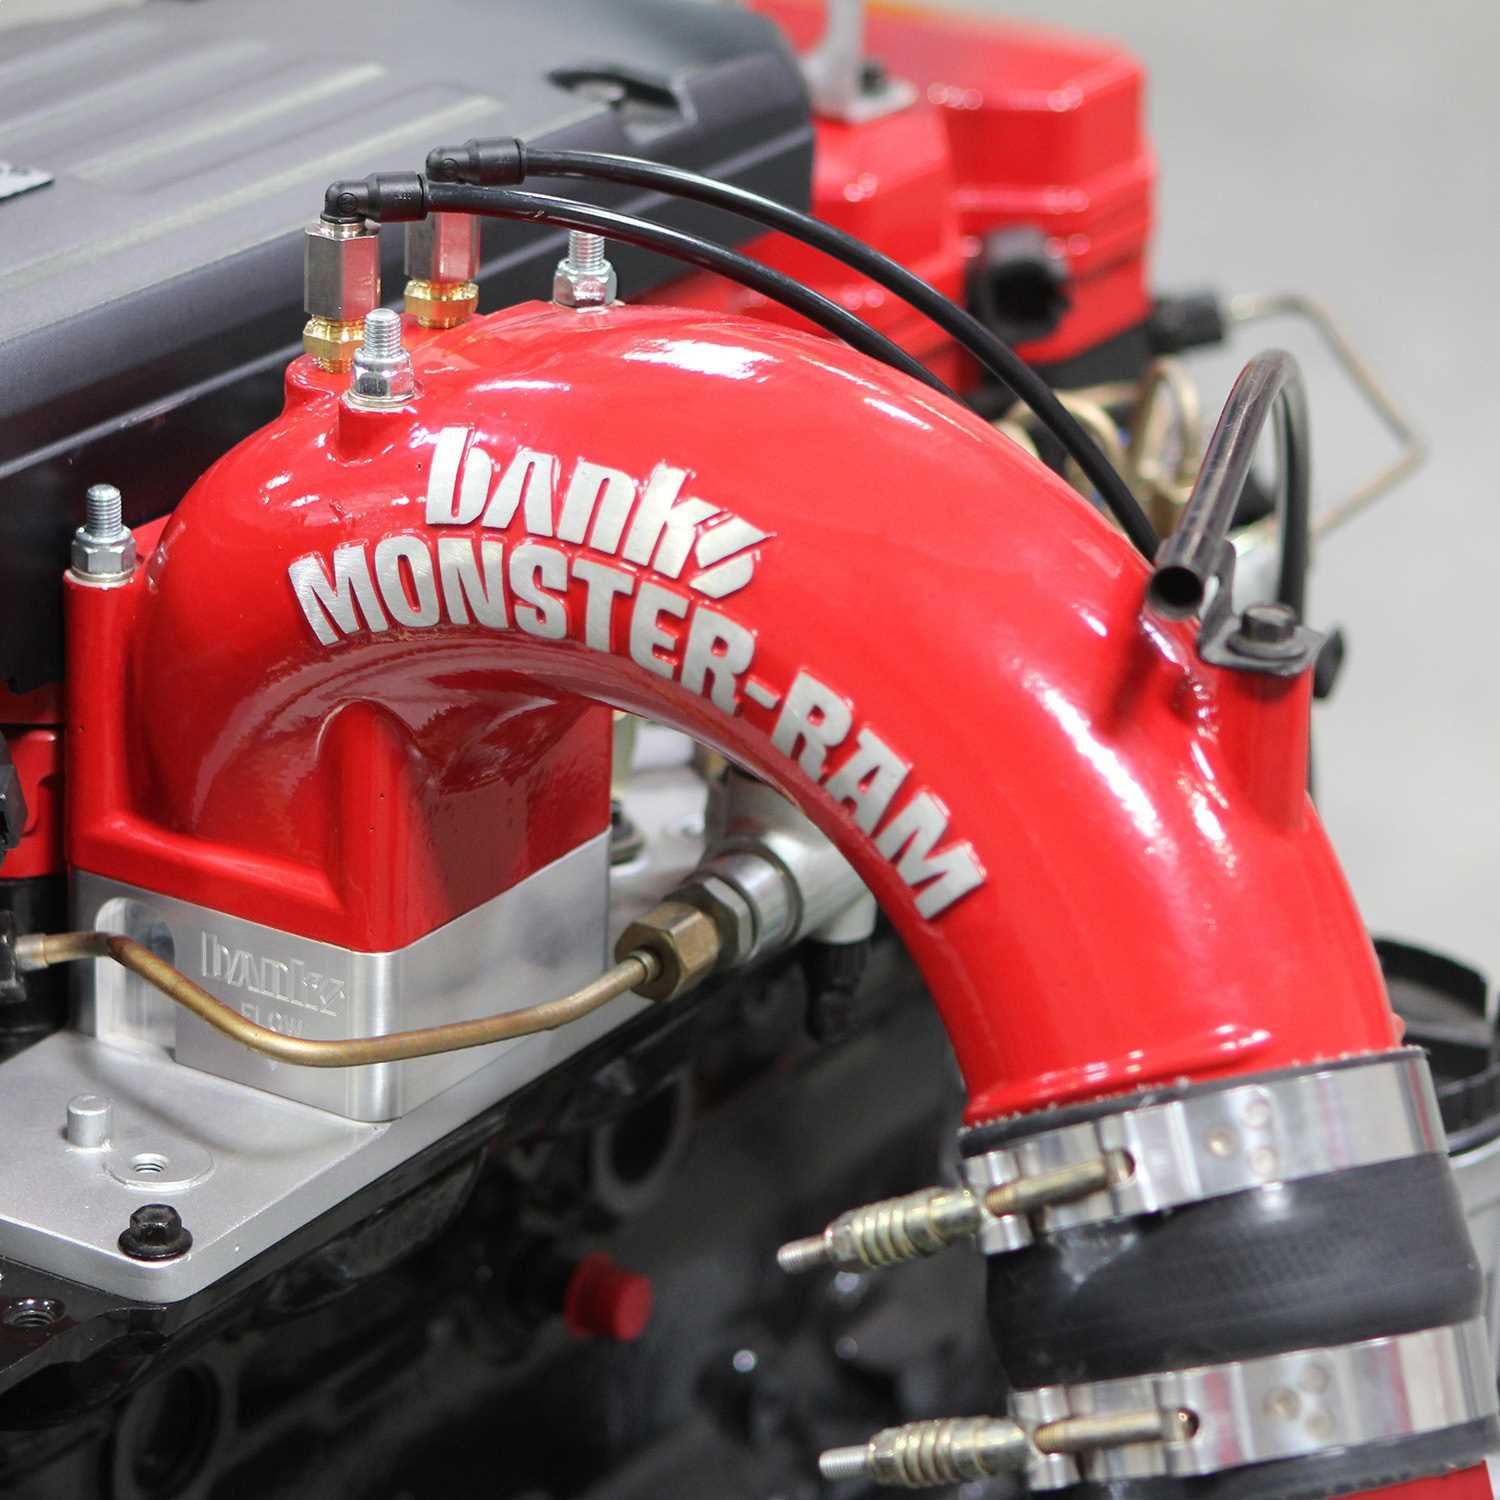 Banks Power Monster® Ram Air Intake Manifold 42766